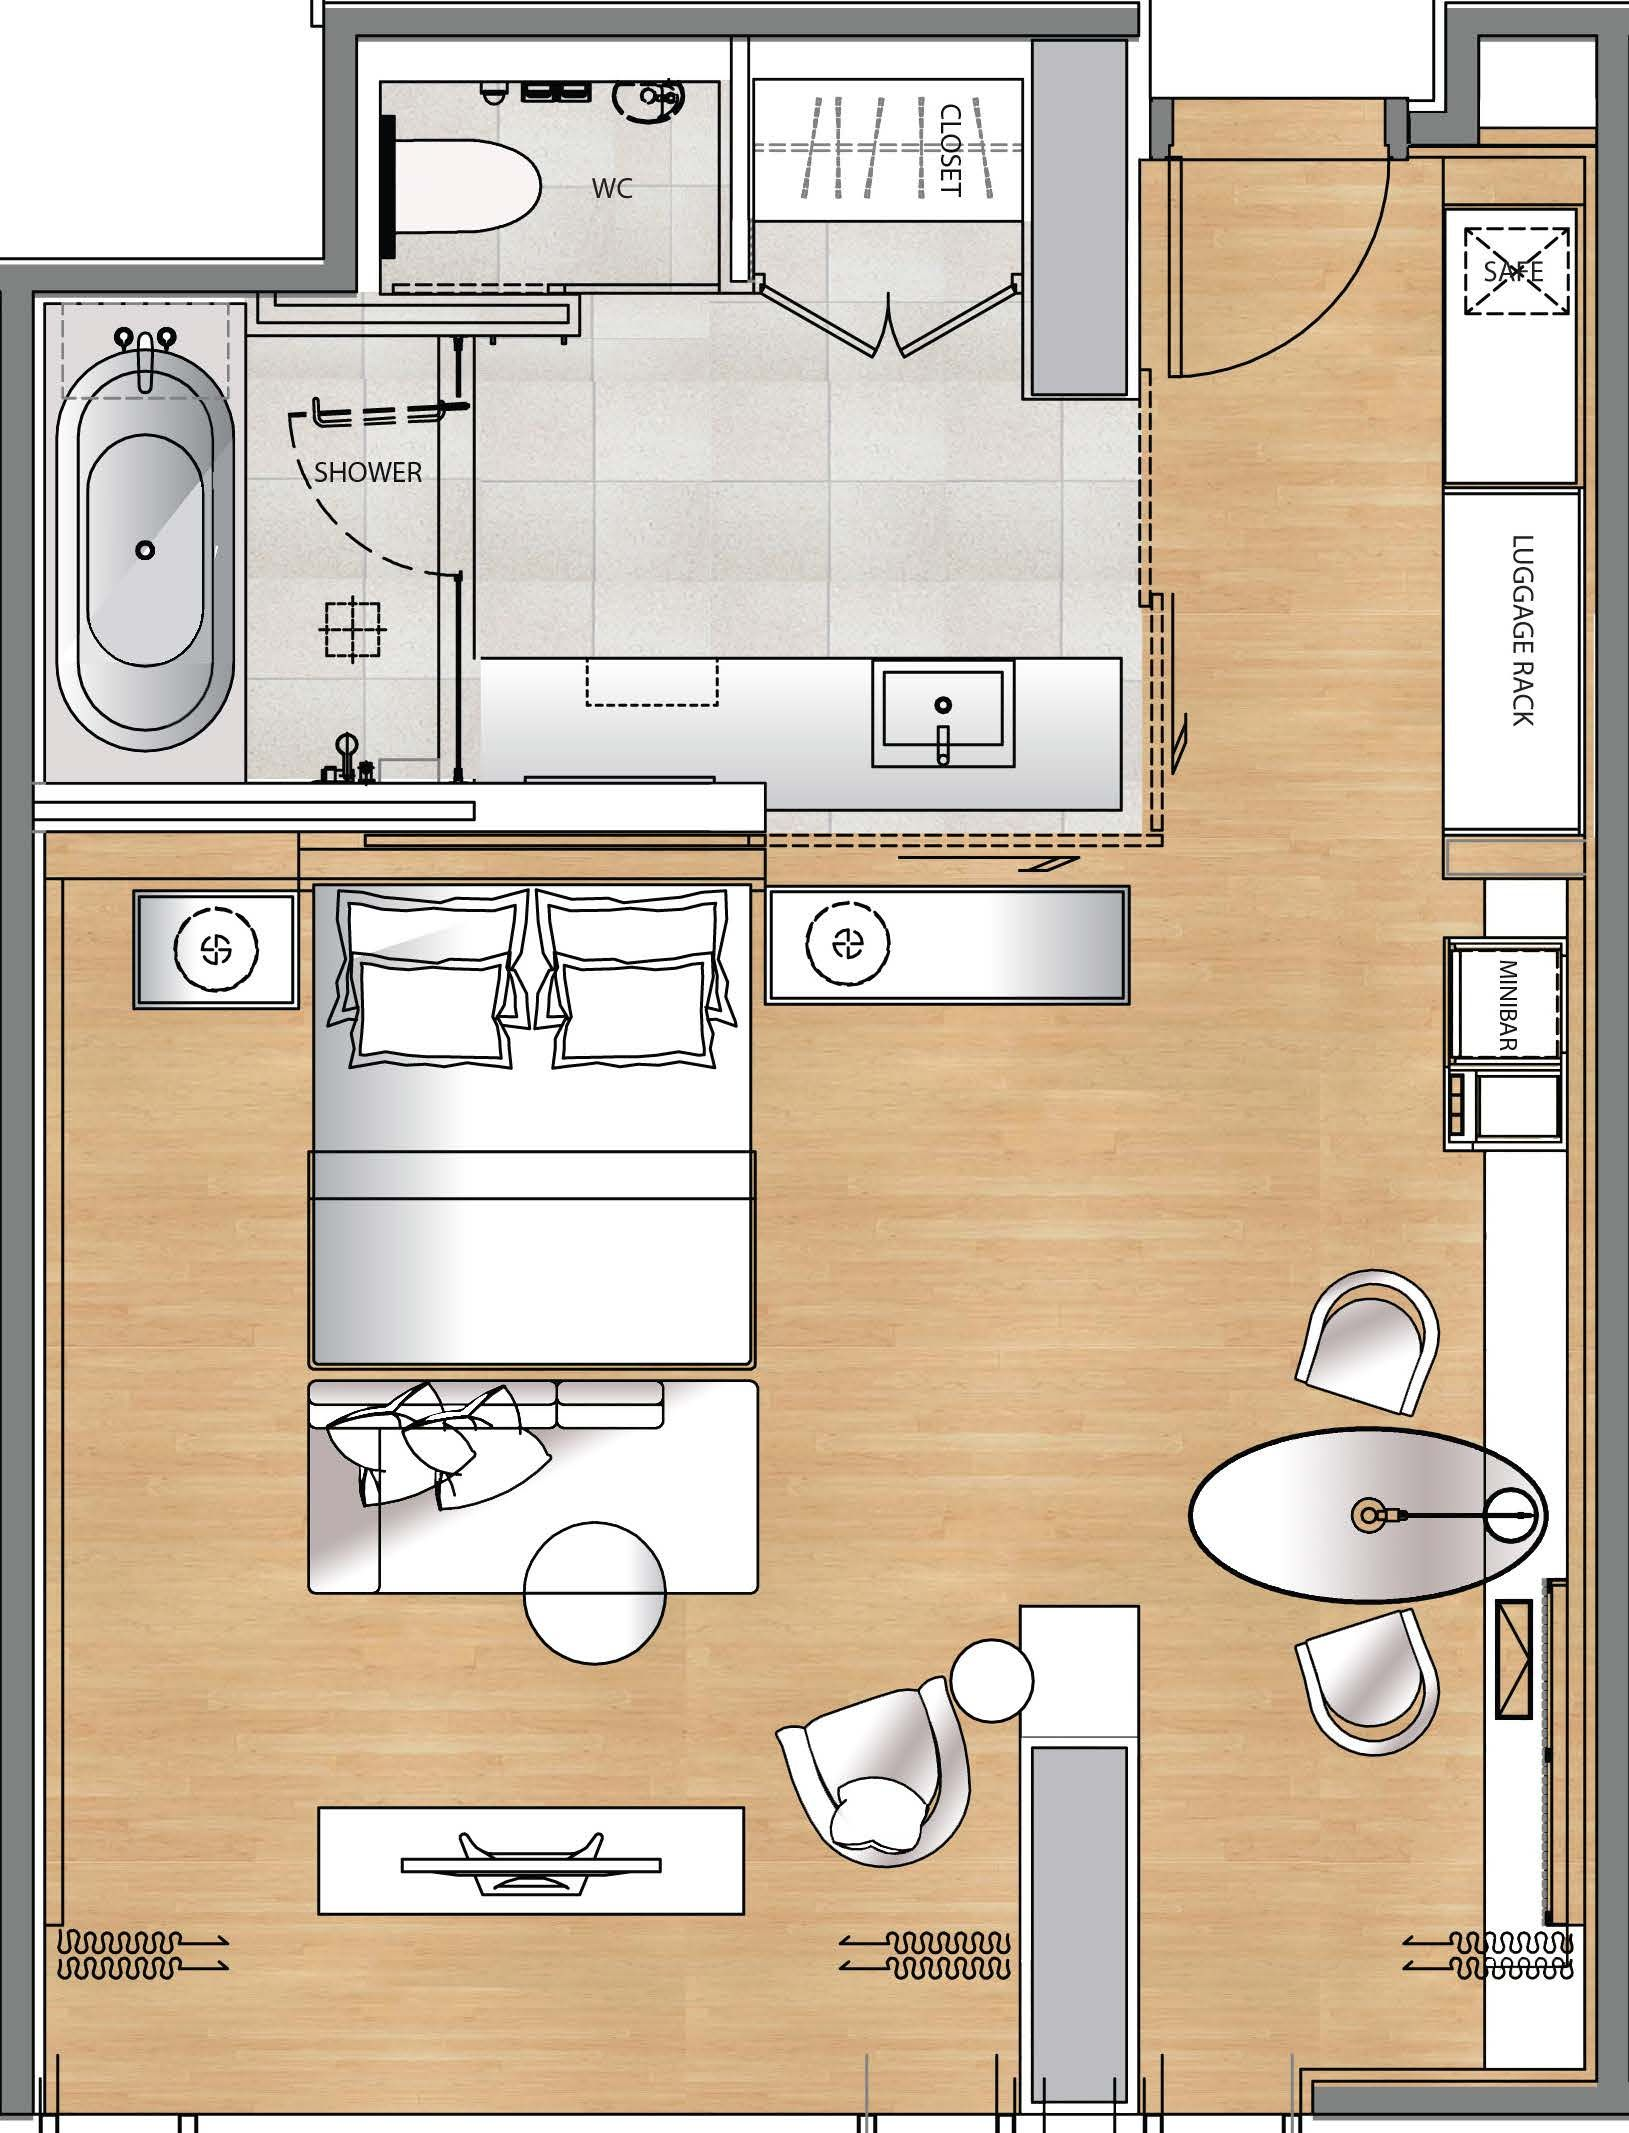 Hotel gym floor plan google search hotel rooms for U design hotel